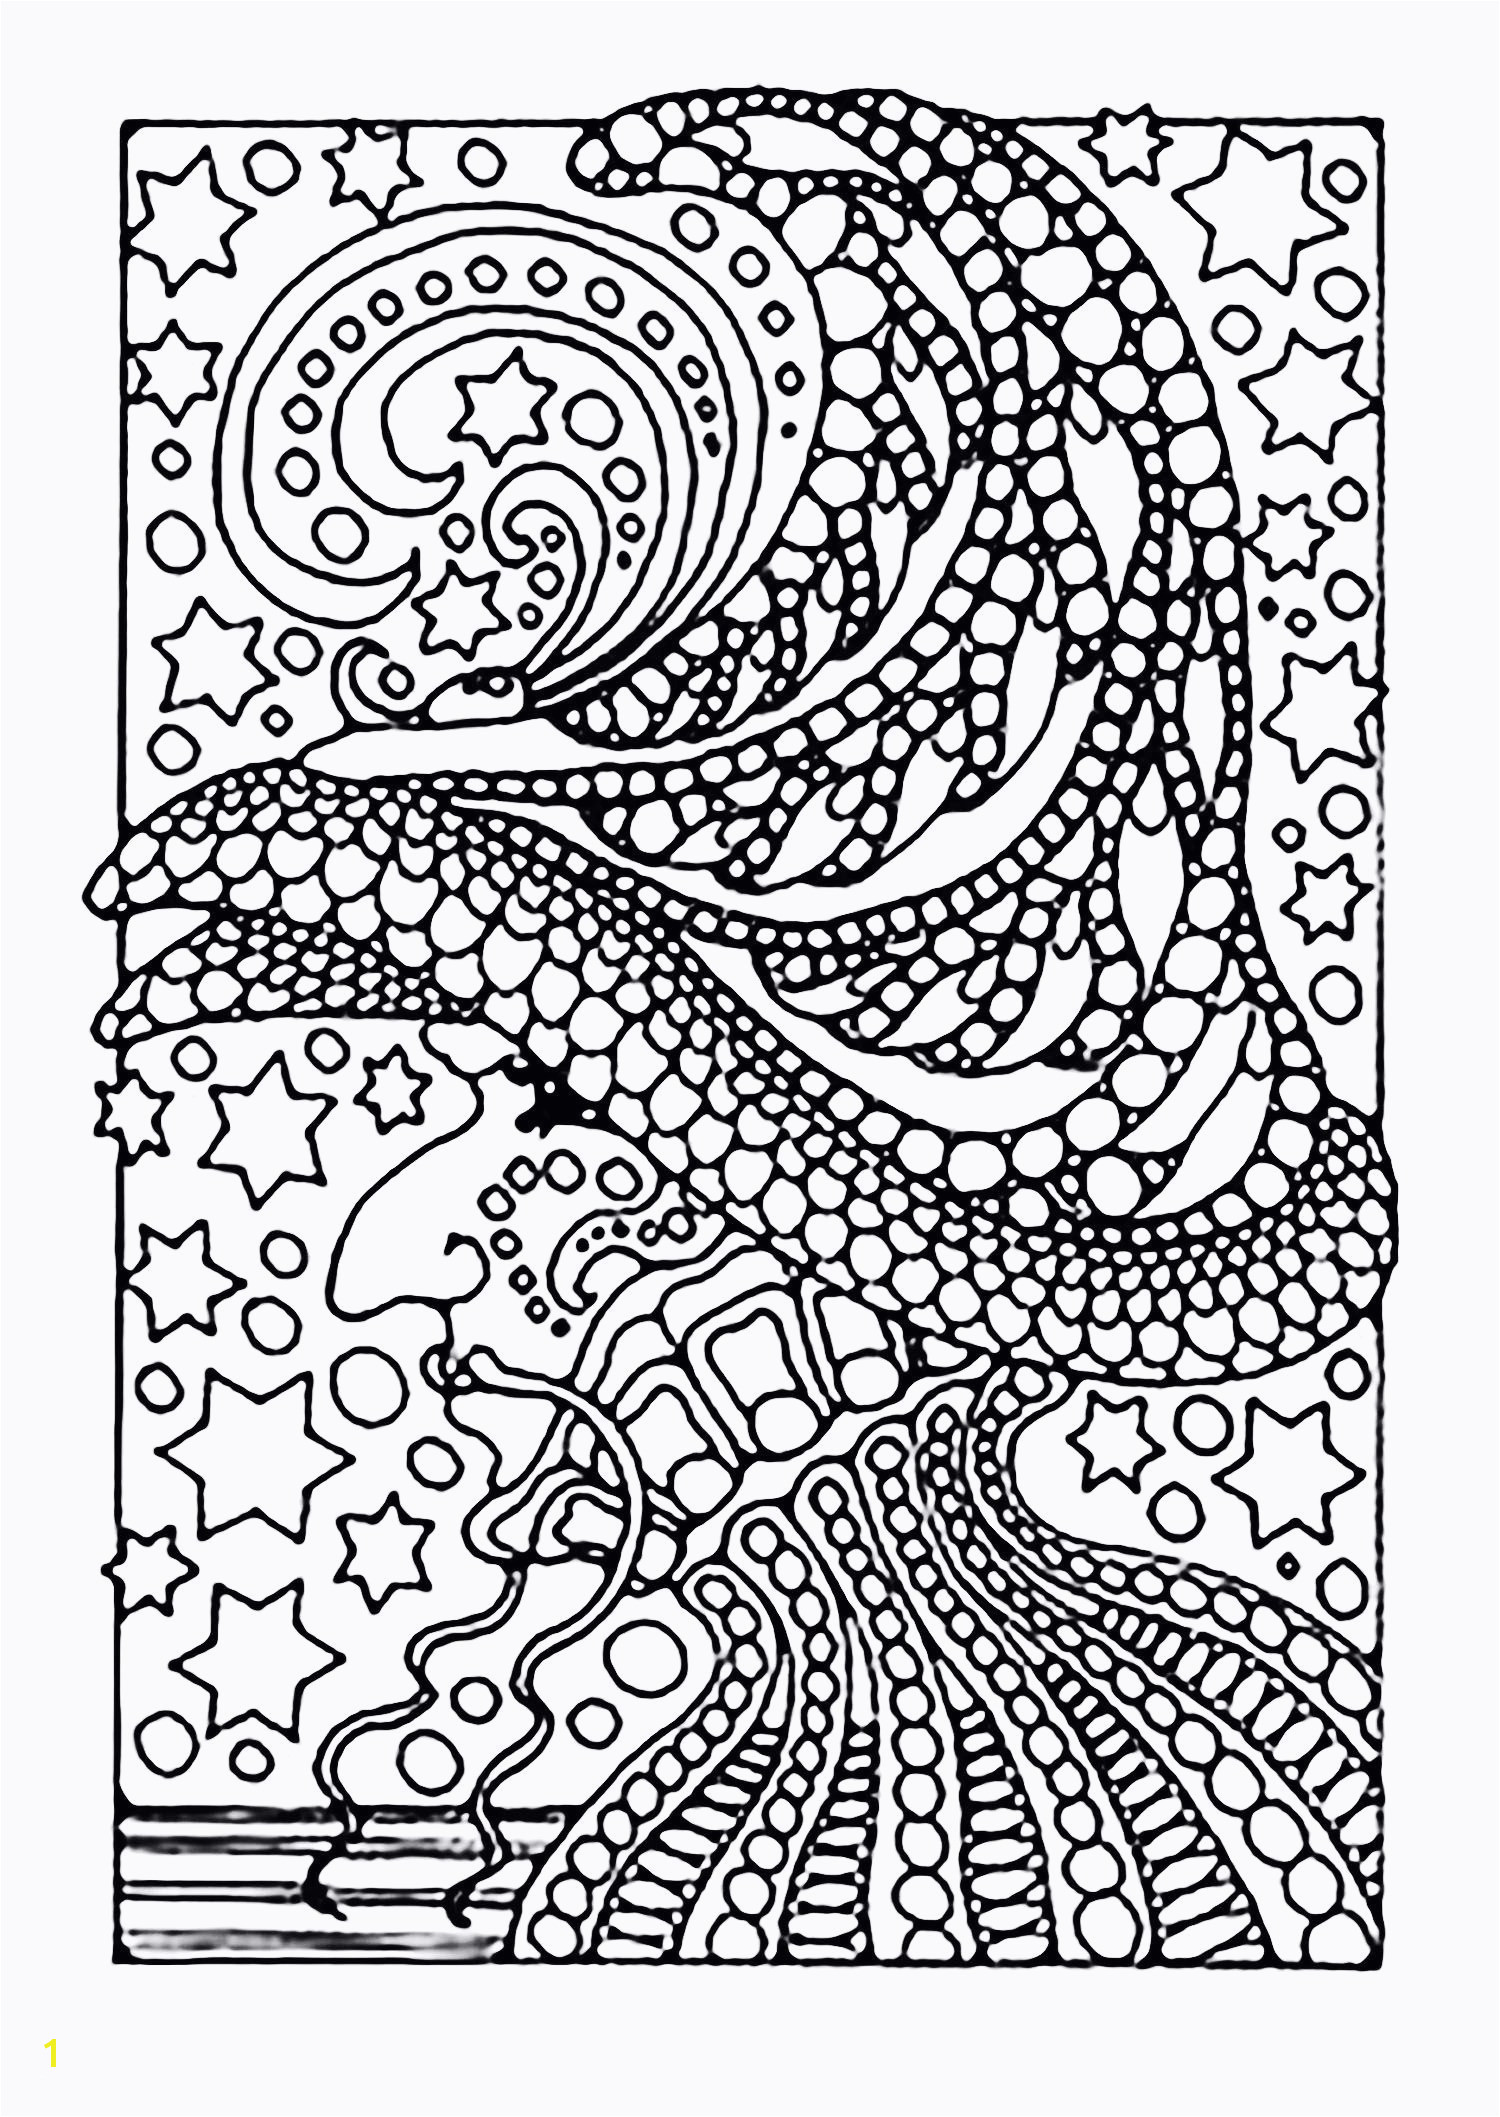 Pages for Kids to Color Coloring Pages for Kids Best Coloring Printables 0d – Fun Time